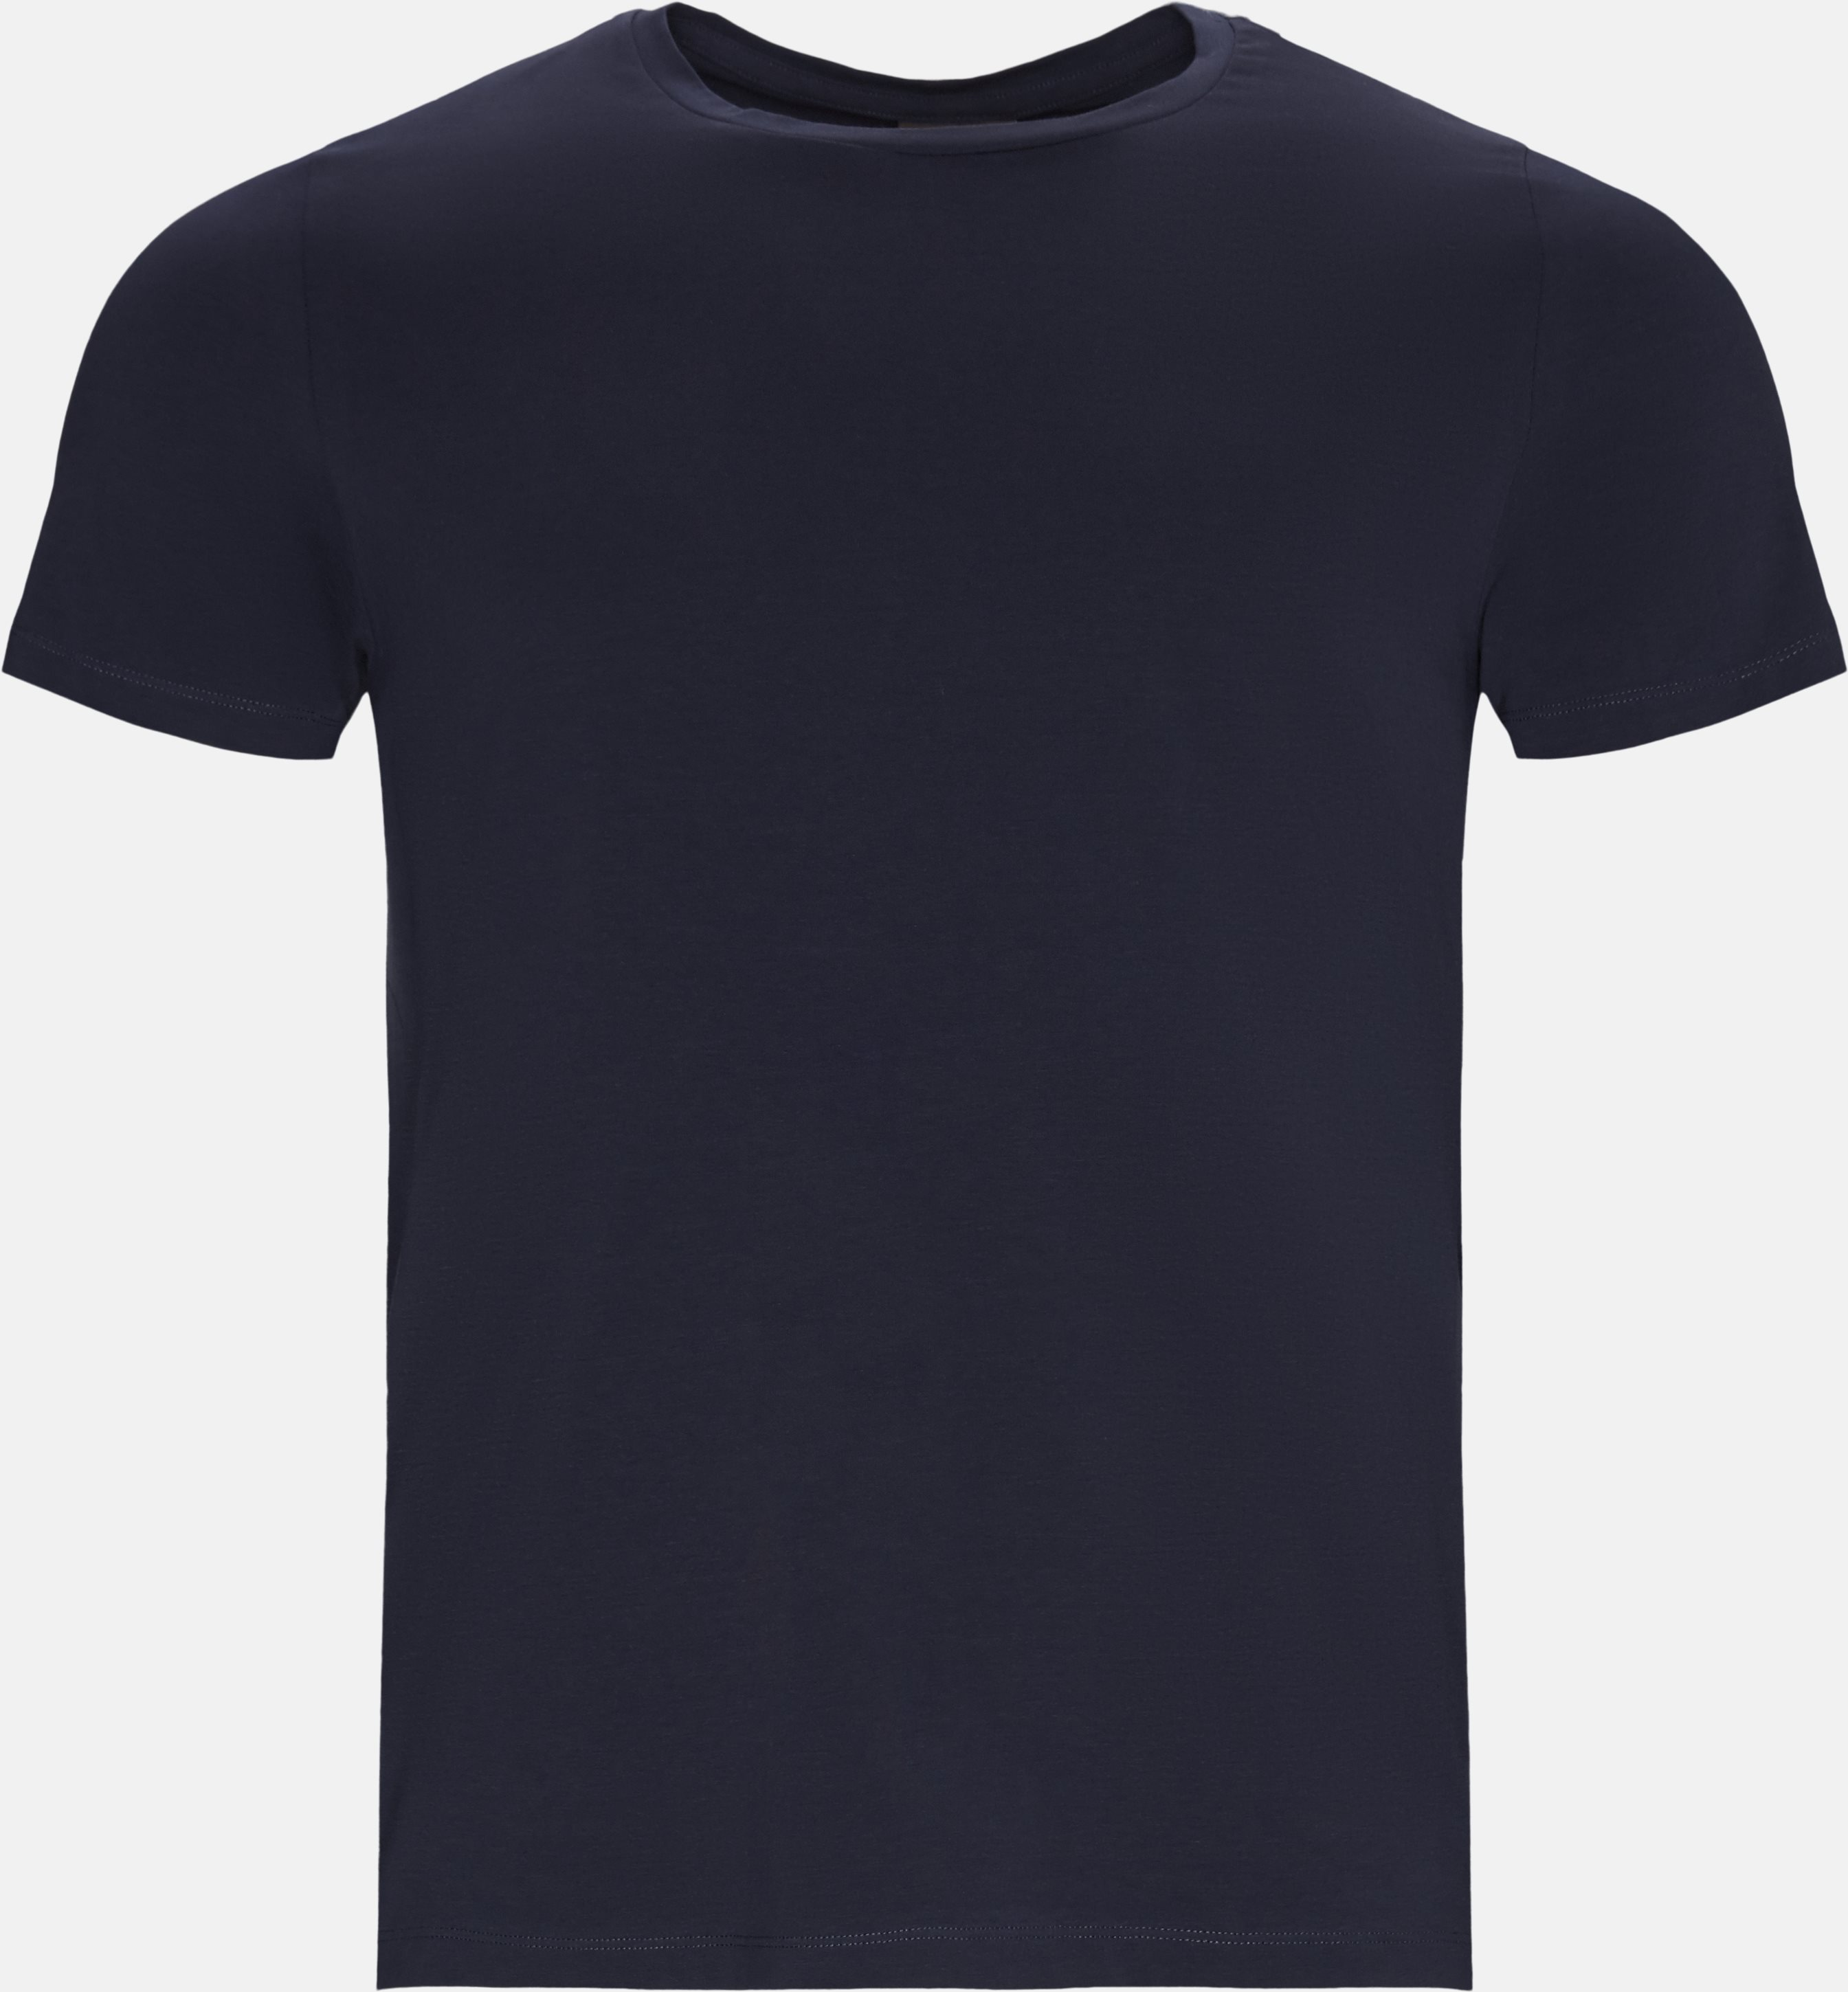 Kyran T-shirt - T-shirts - Regular fit - Blå